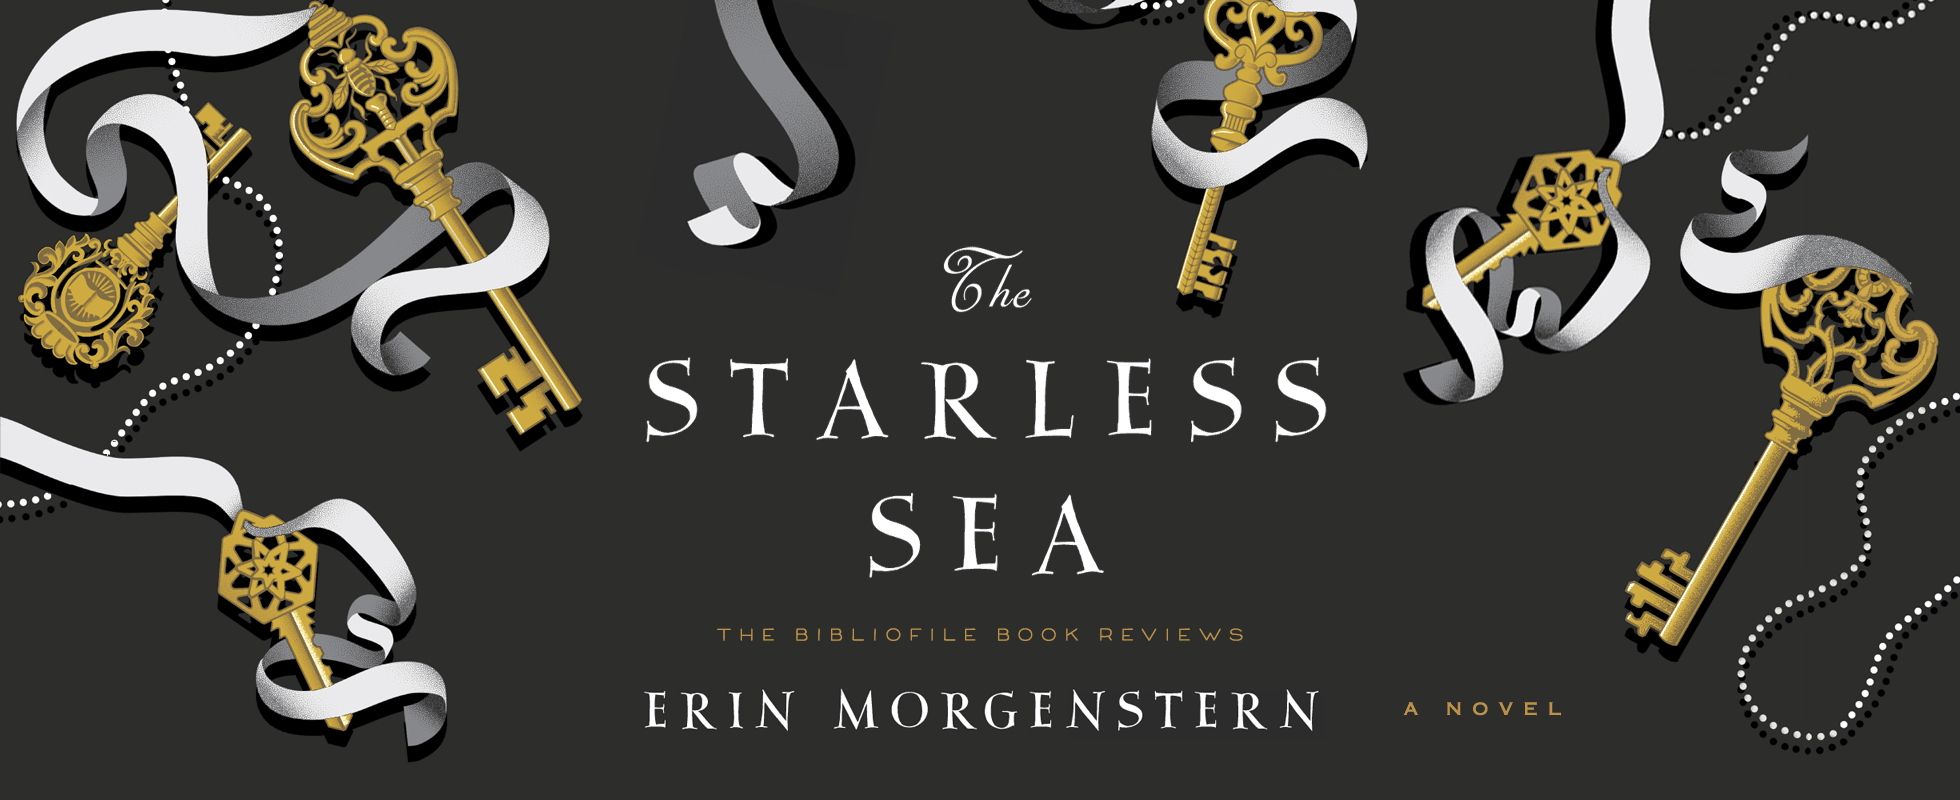 the starless sea erin morgenstern book review summary synopsis